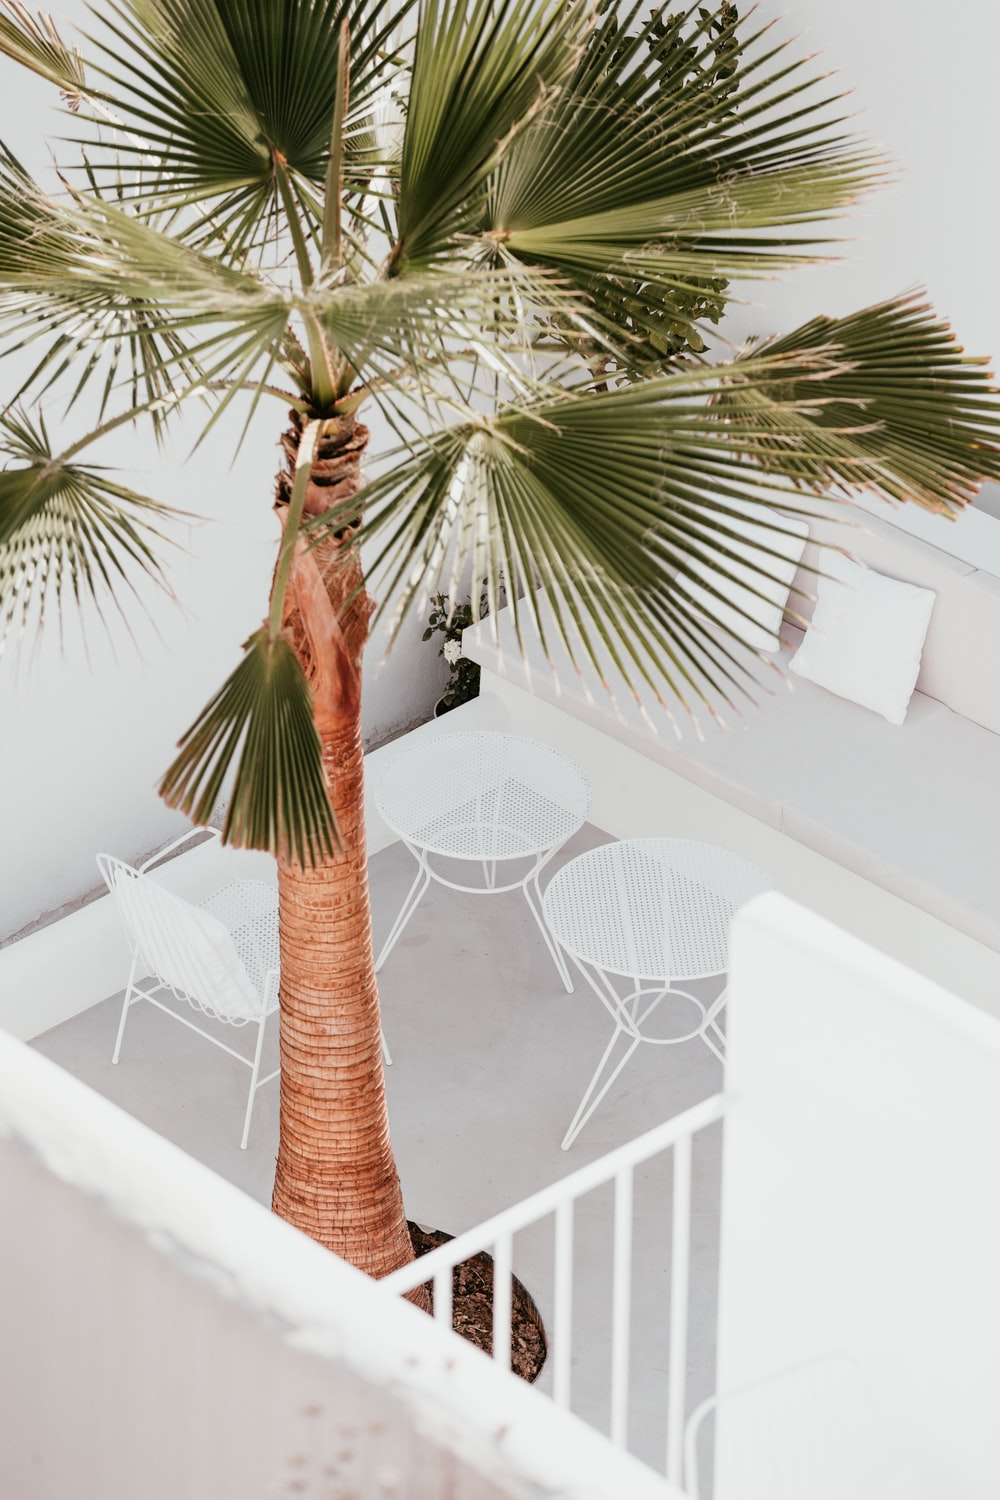 green leafed tree inside house